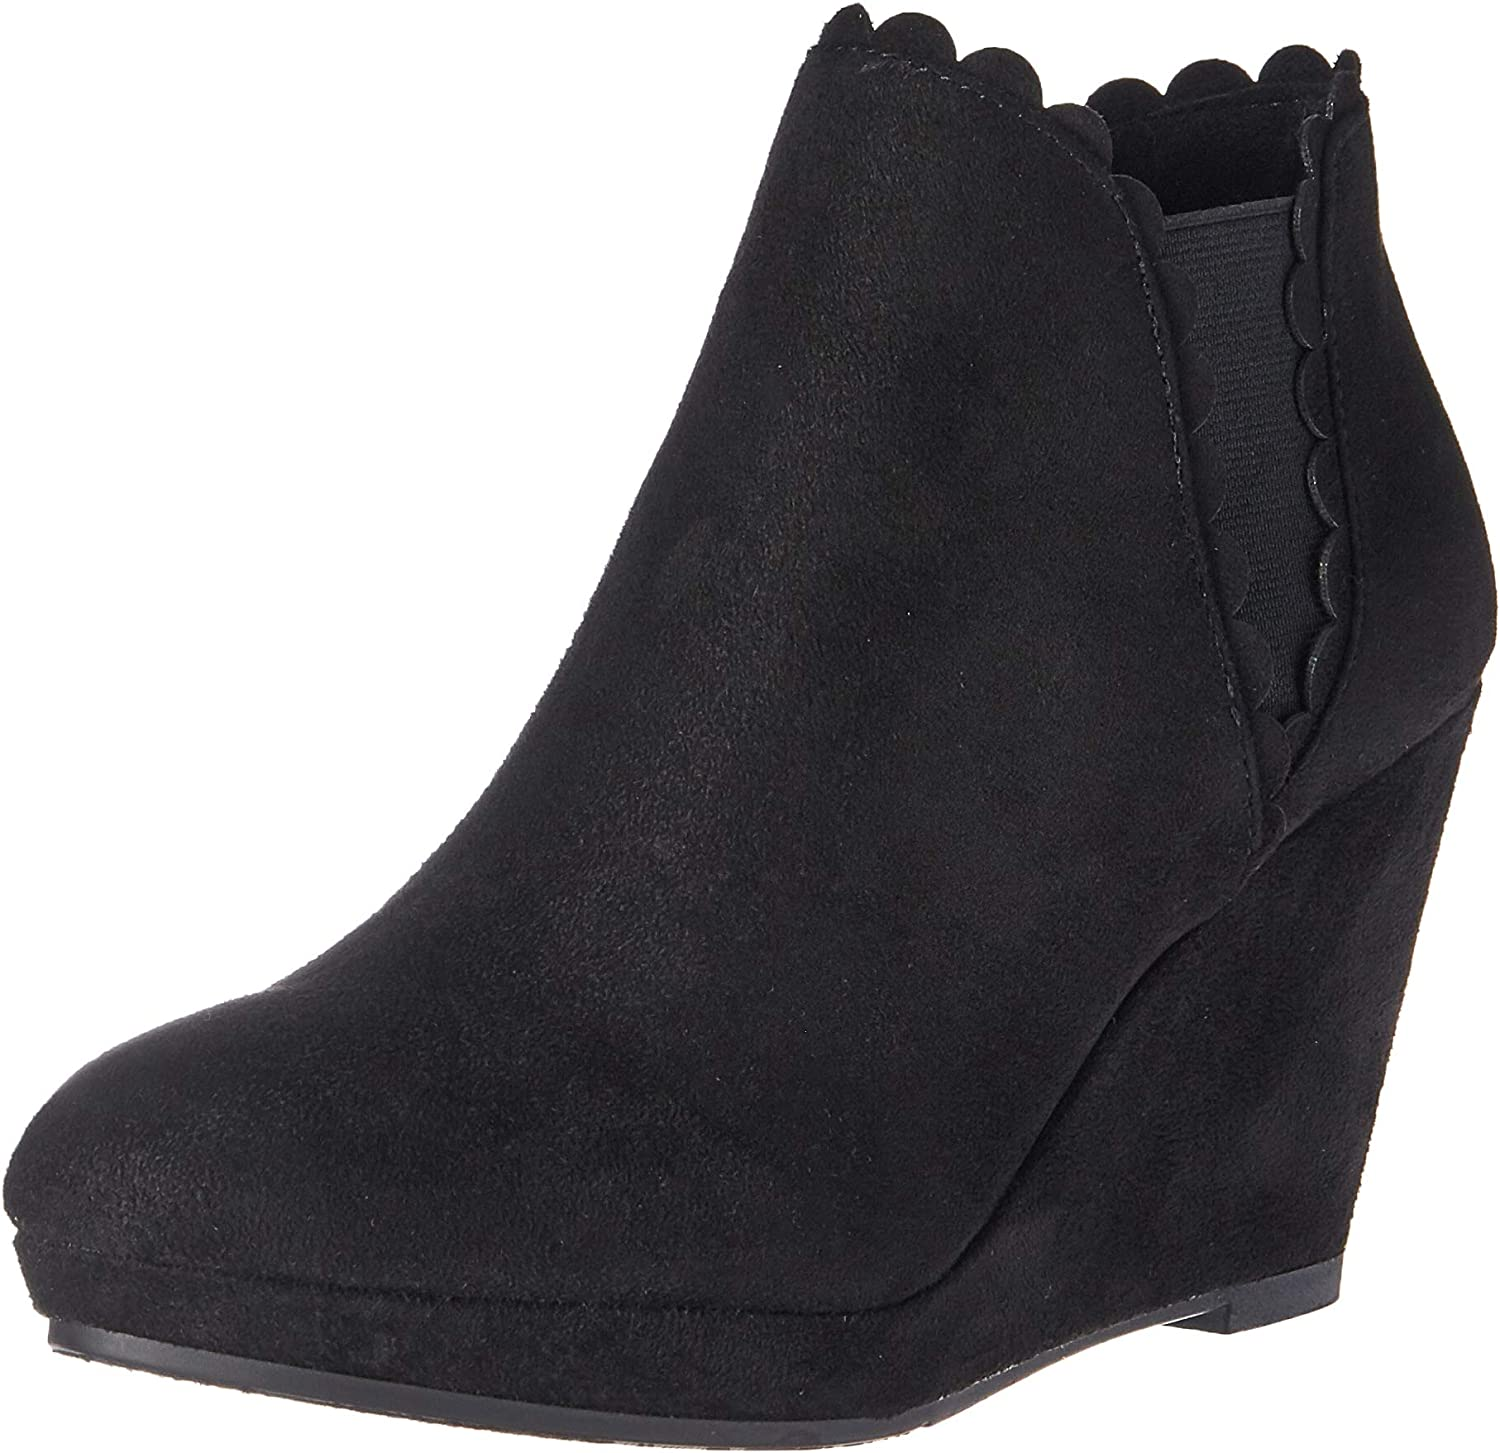 CL by Chinese Laundry Women's Vango Ankle Boot